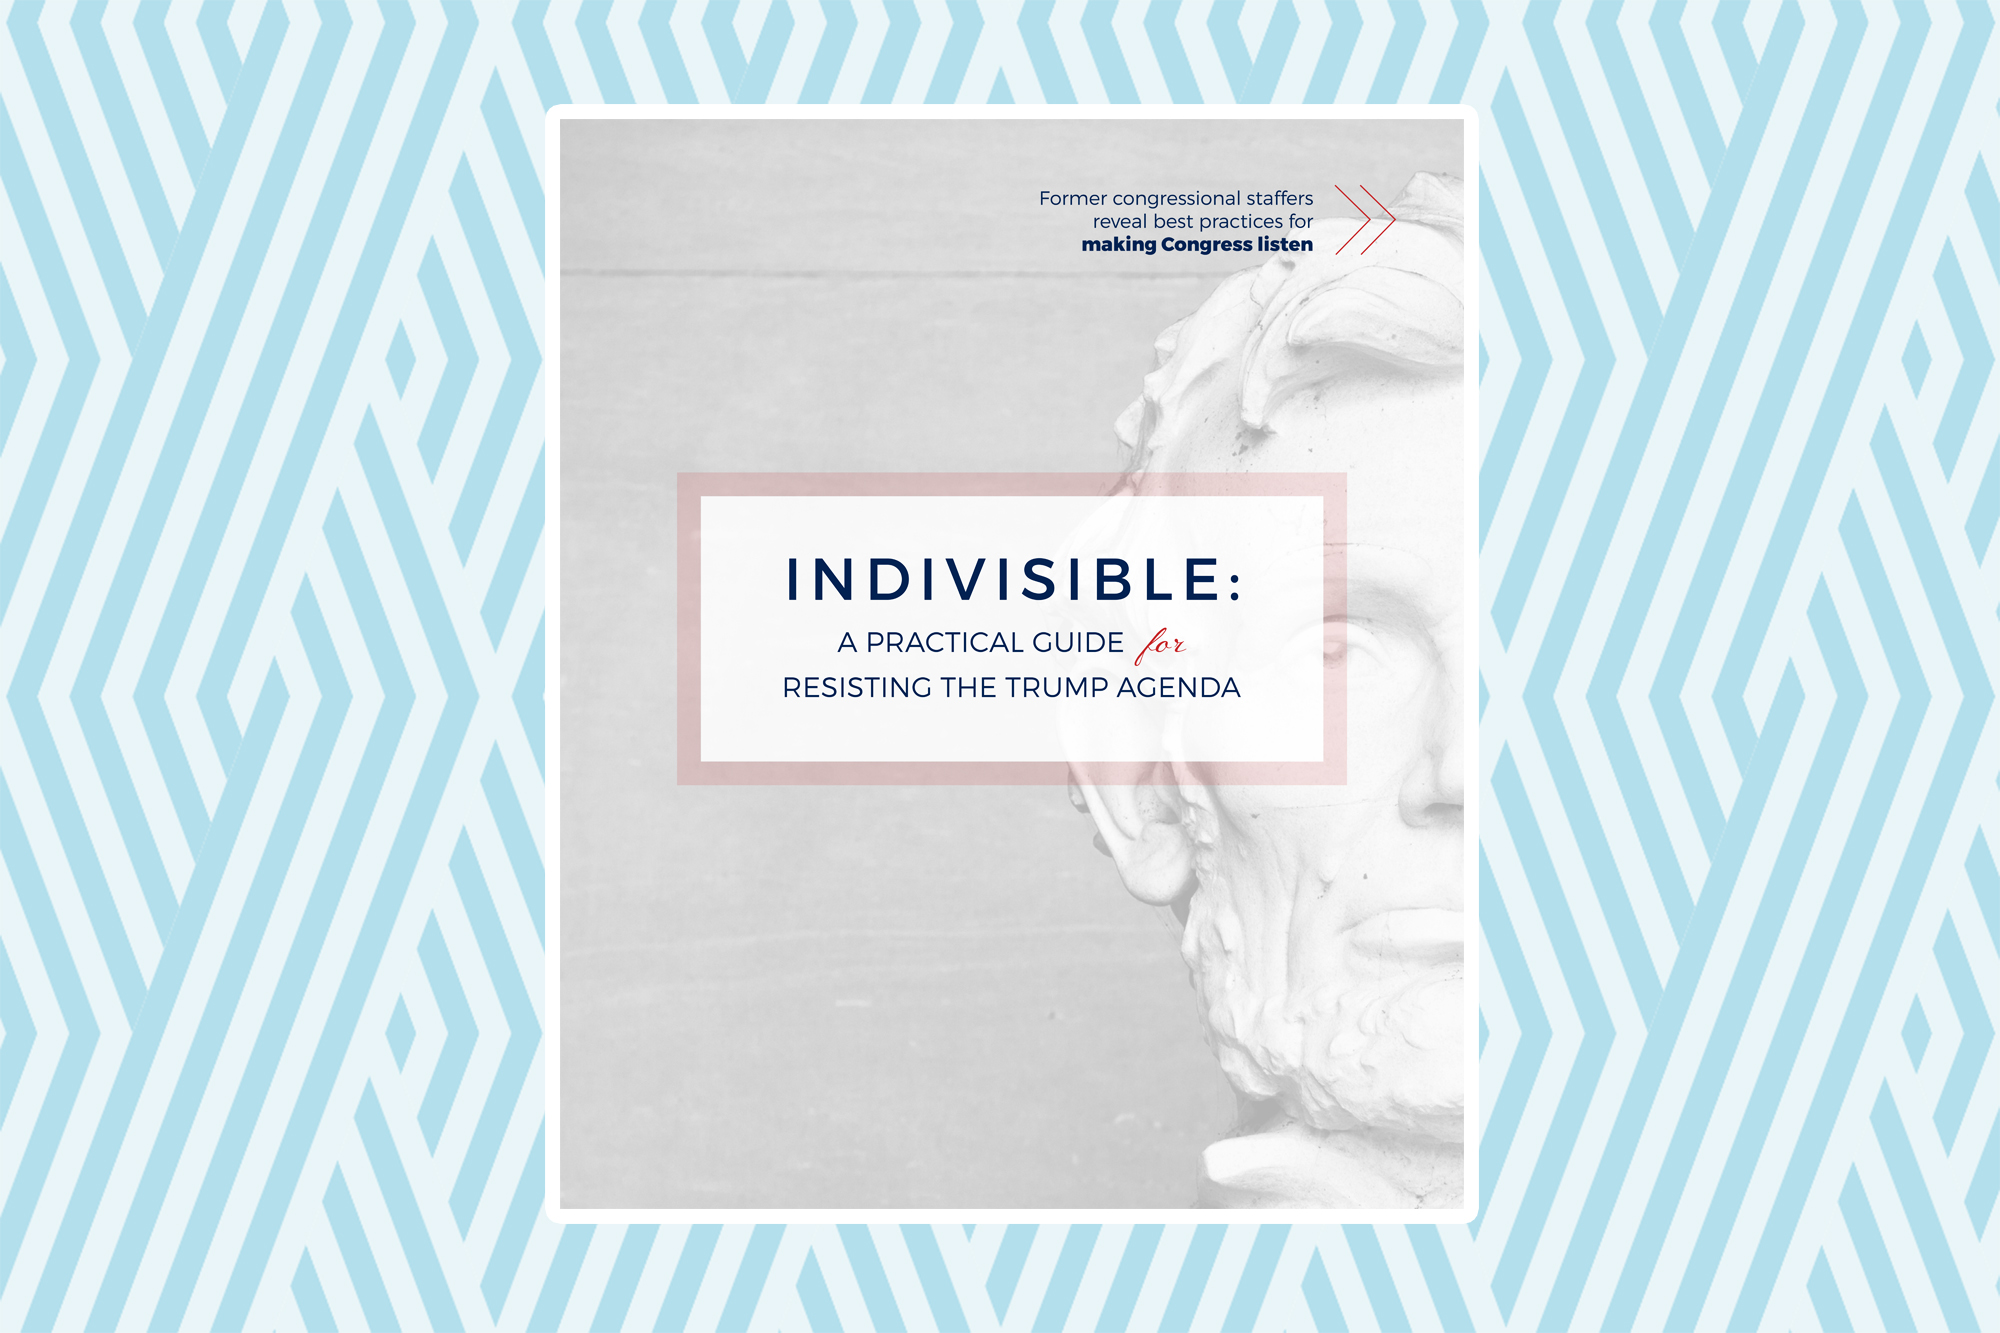 Indivisible Guide; Photo Illustration by Kenneth Bachor for TIME